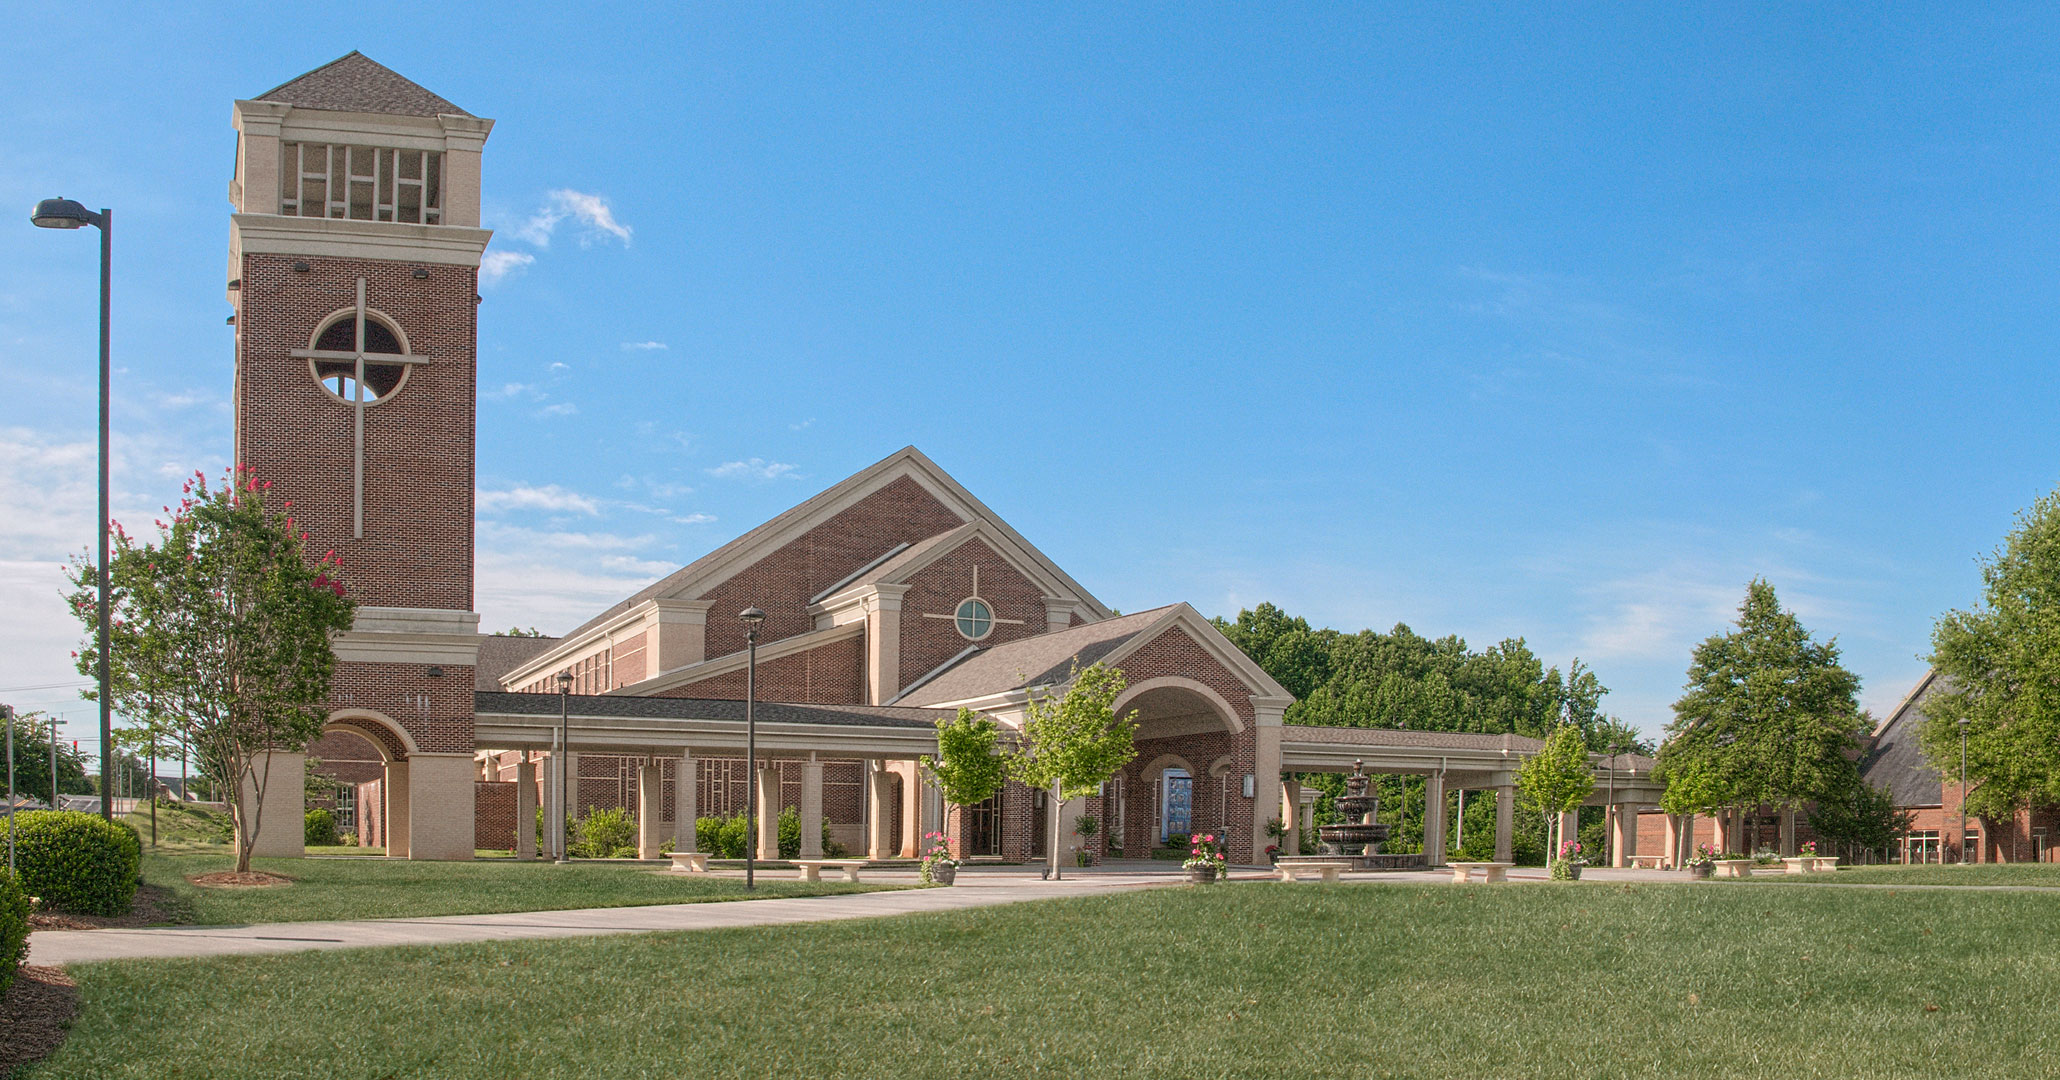 Boudreaux architects worked with St. Mark Catholic Church to design a new church.